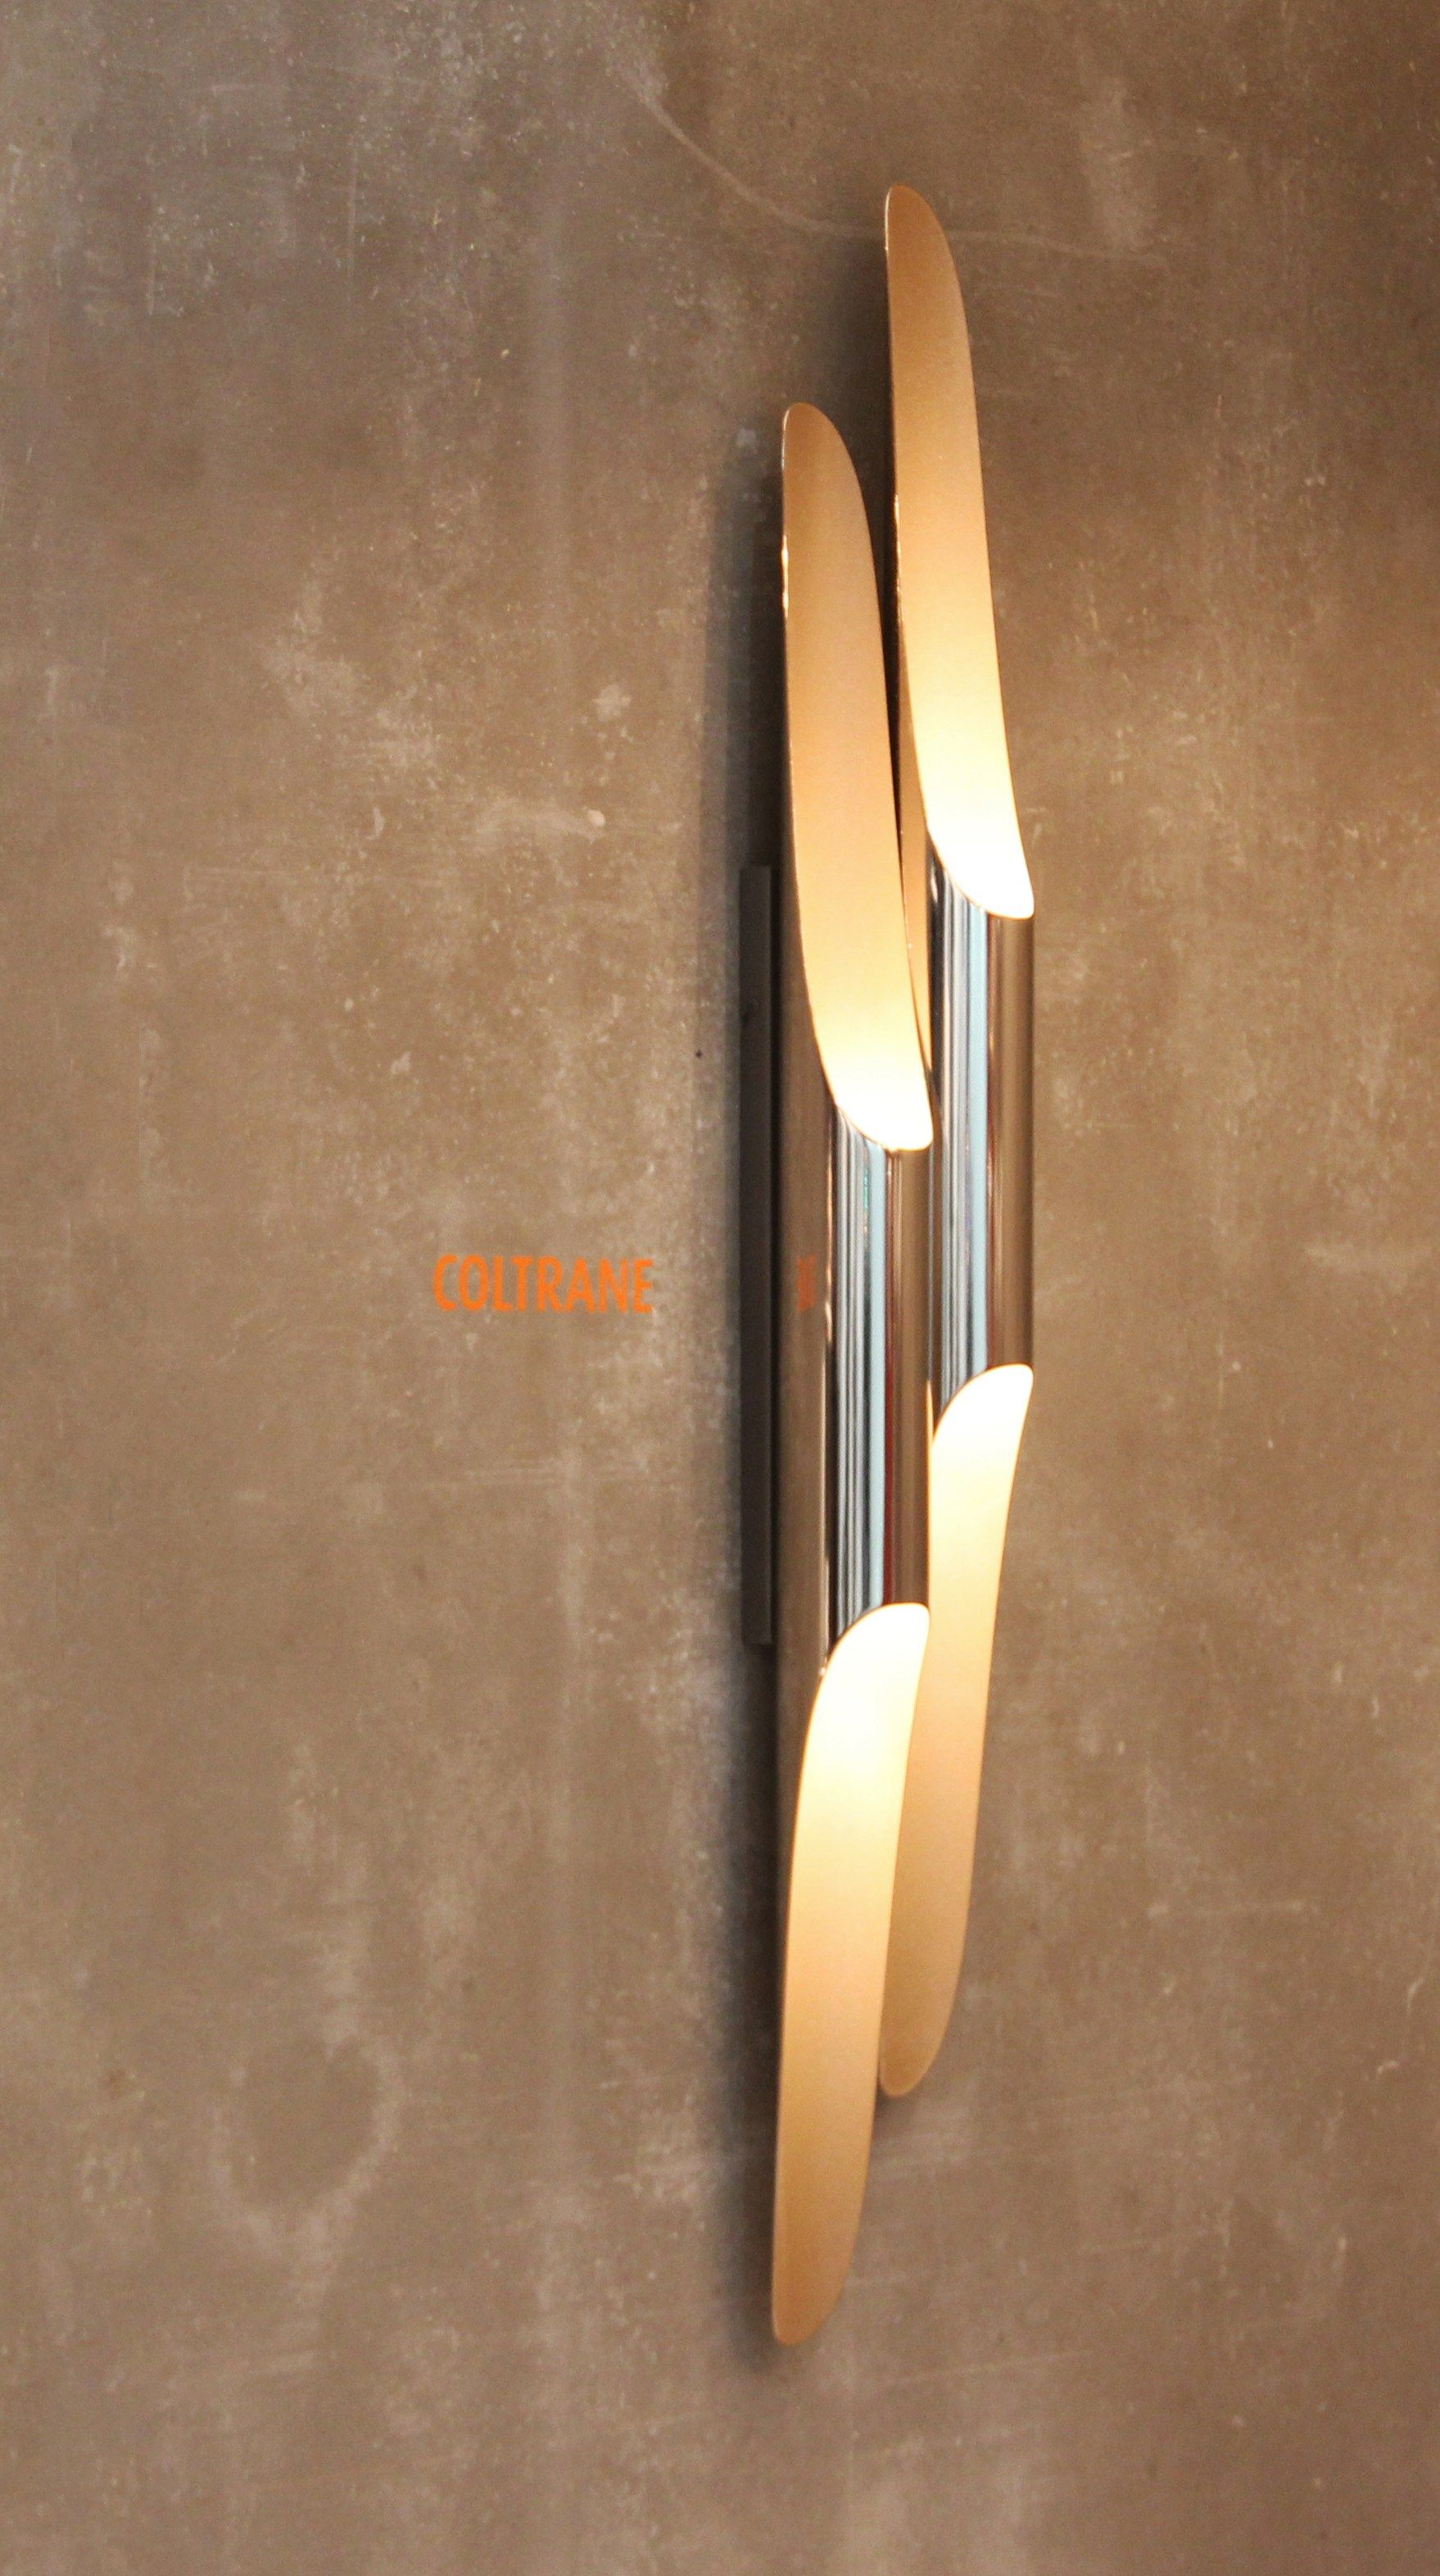 Decoracion Bambu Interiores Coltrane Design Wall Lamp Ideas Para El Hogar